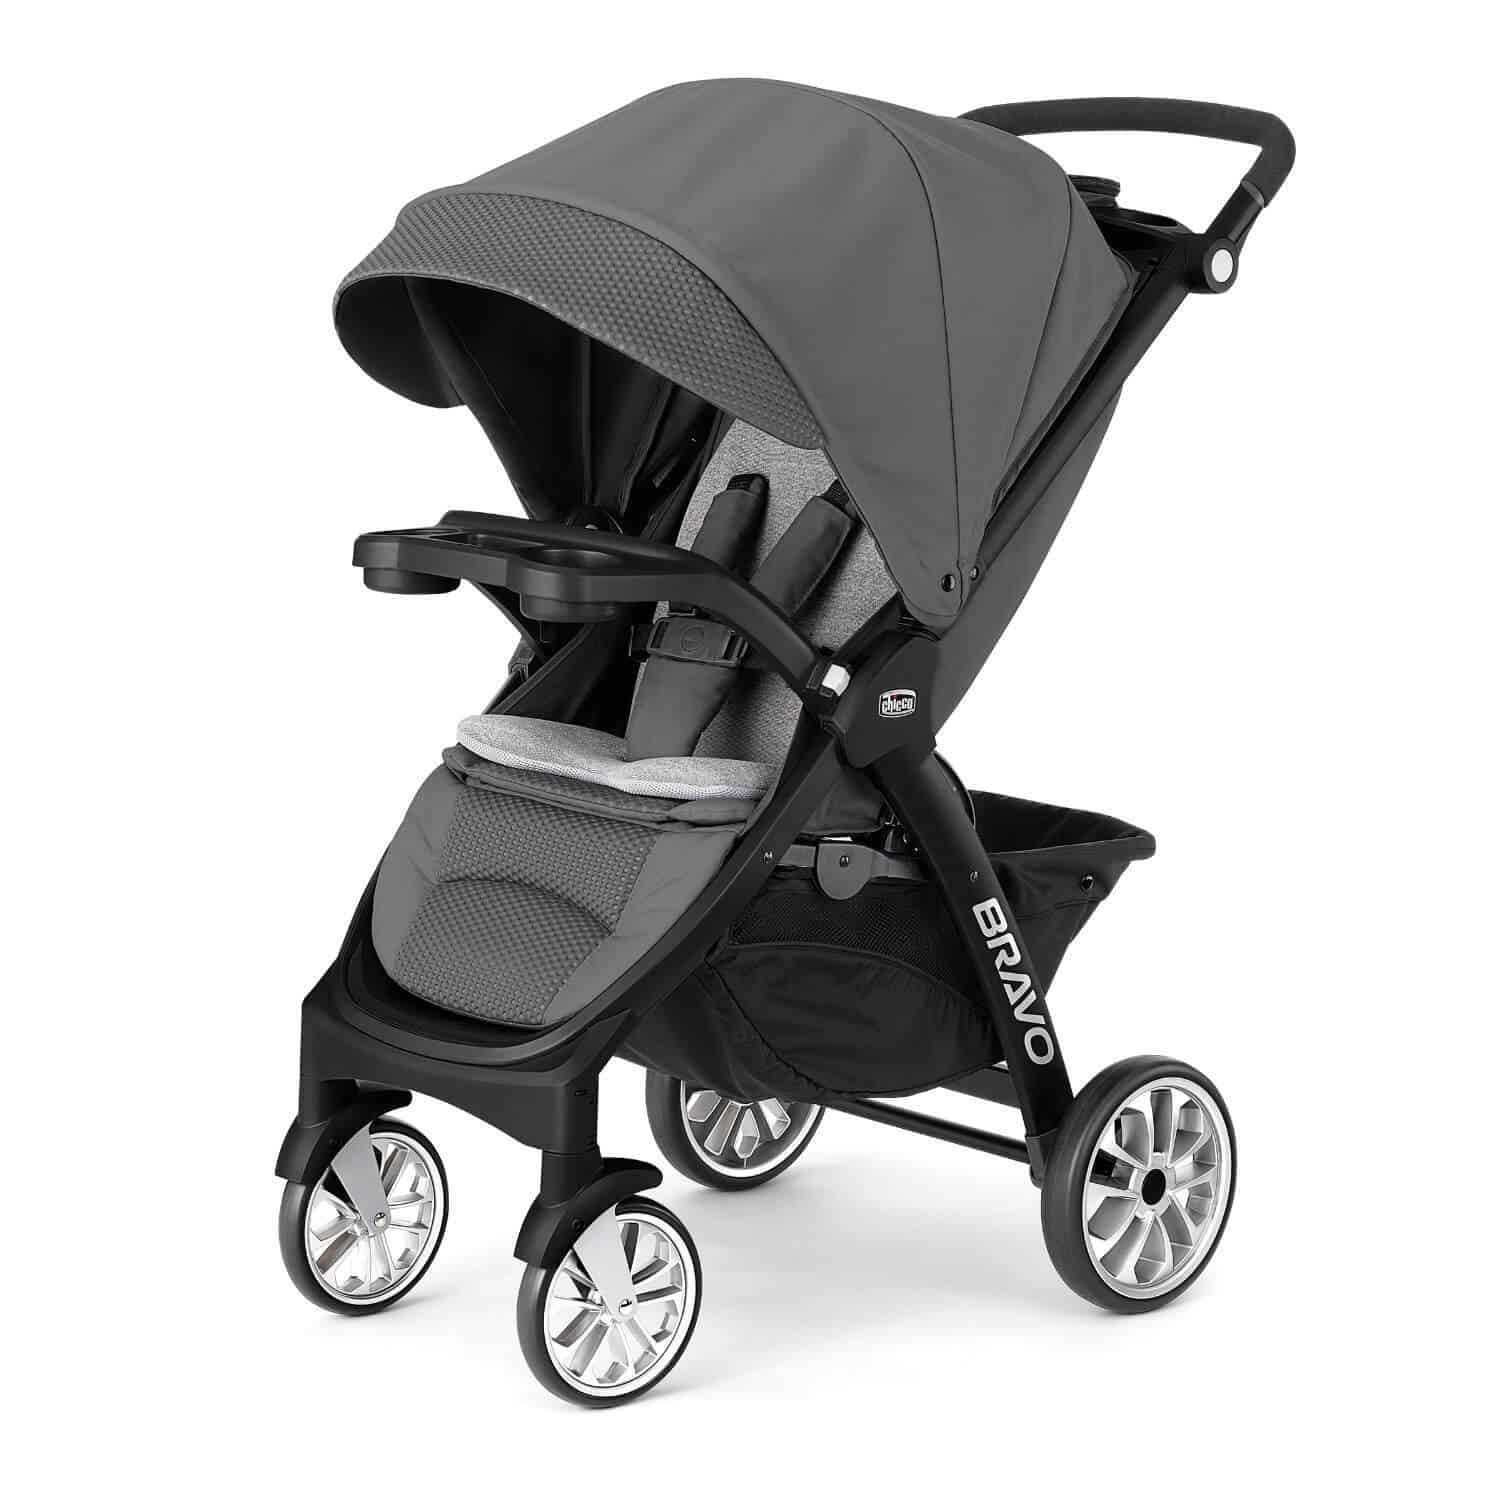 Top 5 Rated And Reviewed And Baby Strollers For Moms